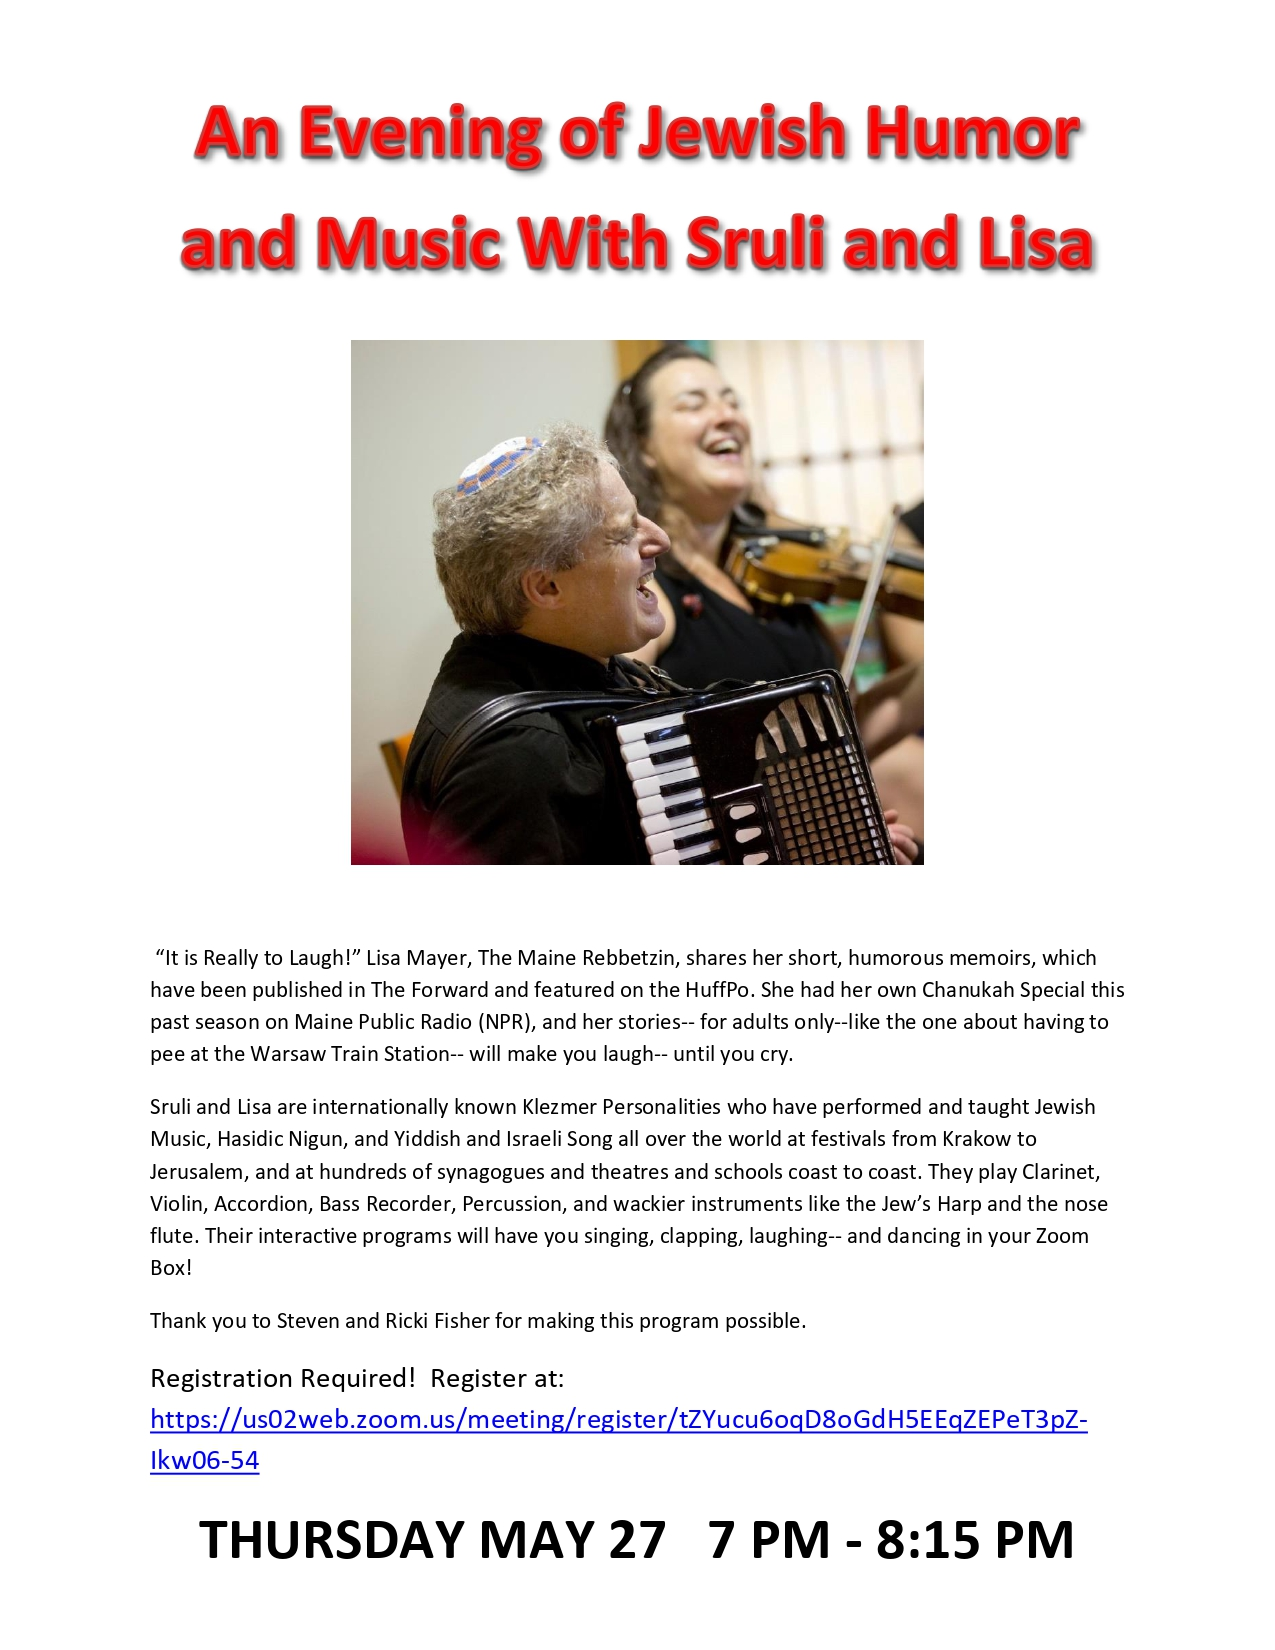 Banner Image for An Evening of Jewish Humor and Jewish Music with Sruli and Lisa